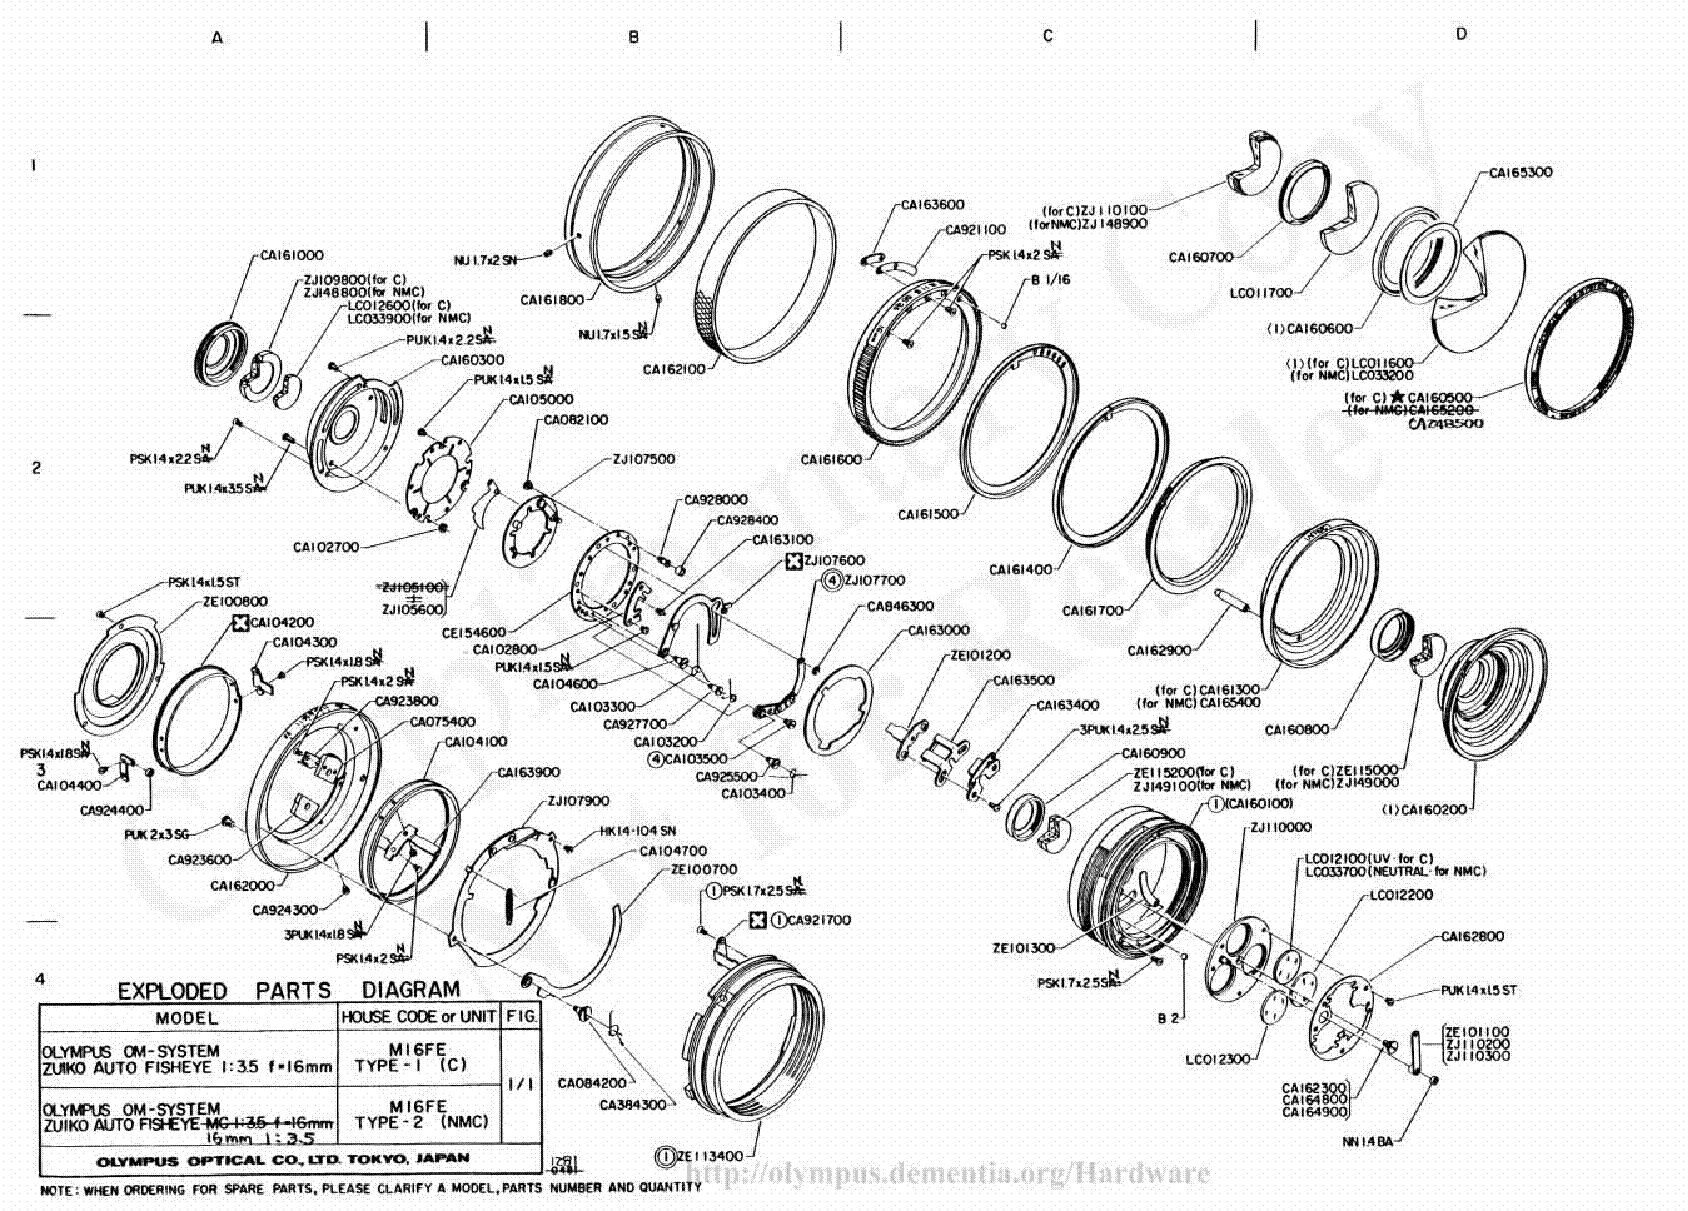 OLYMPUS 20MM 38MM F3.5 MACRO EXPLODED PARTS DIAGRAM